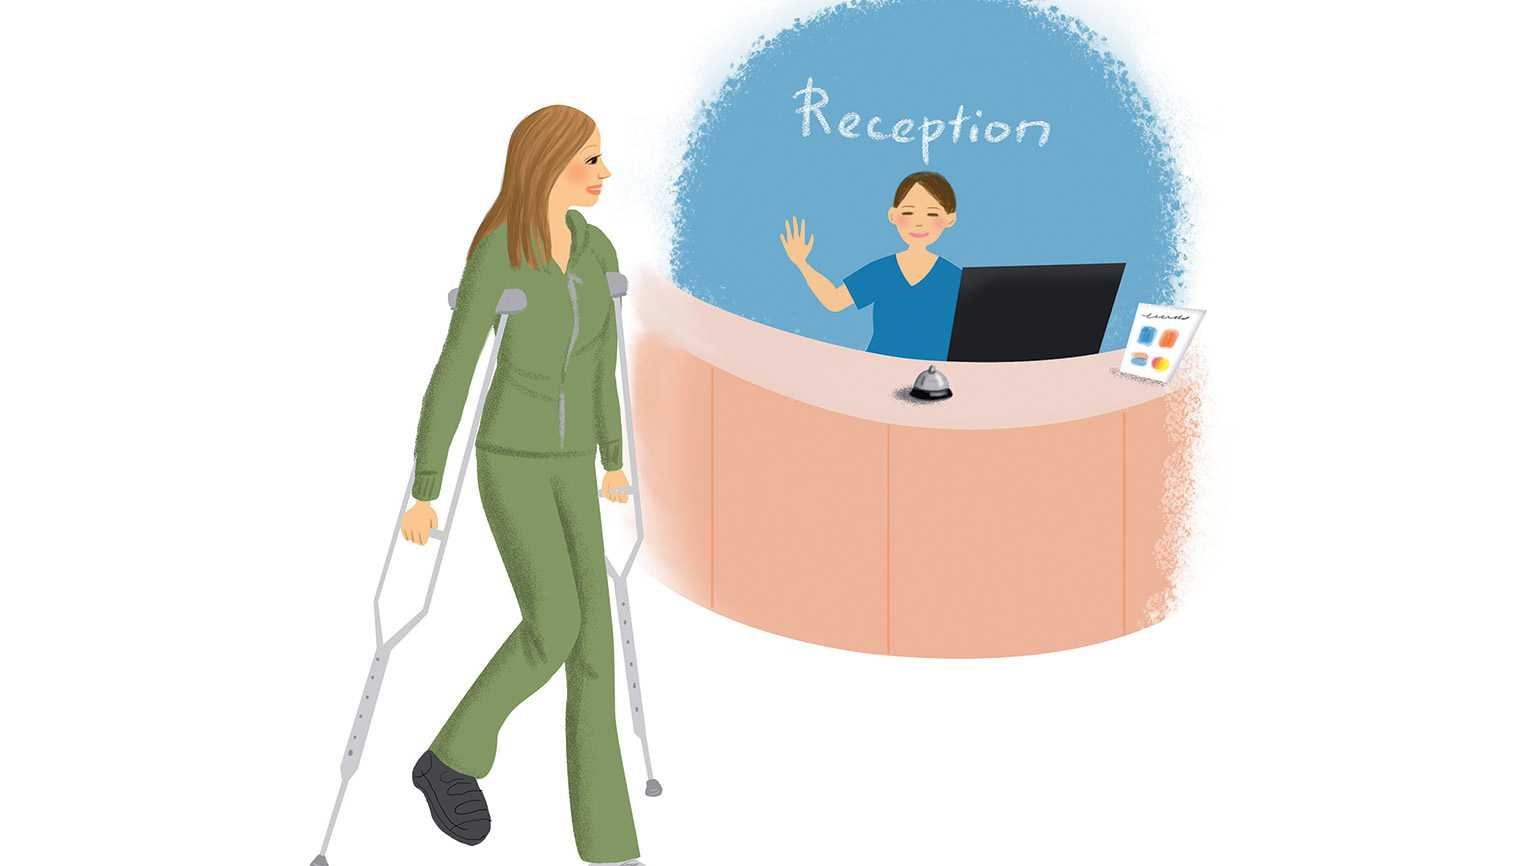 An illustration of a woman with crutches visiting the reception desk as a friendly nurses greets her with a wave.